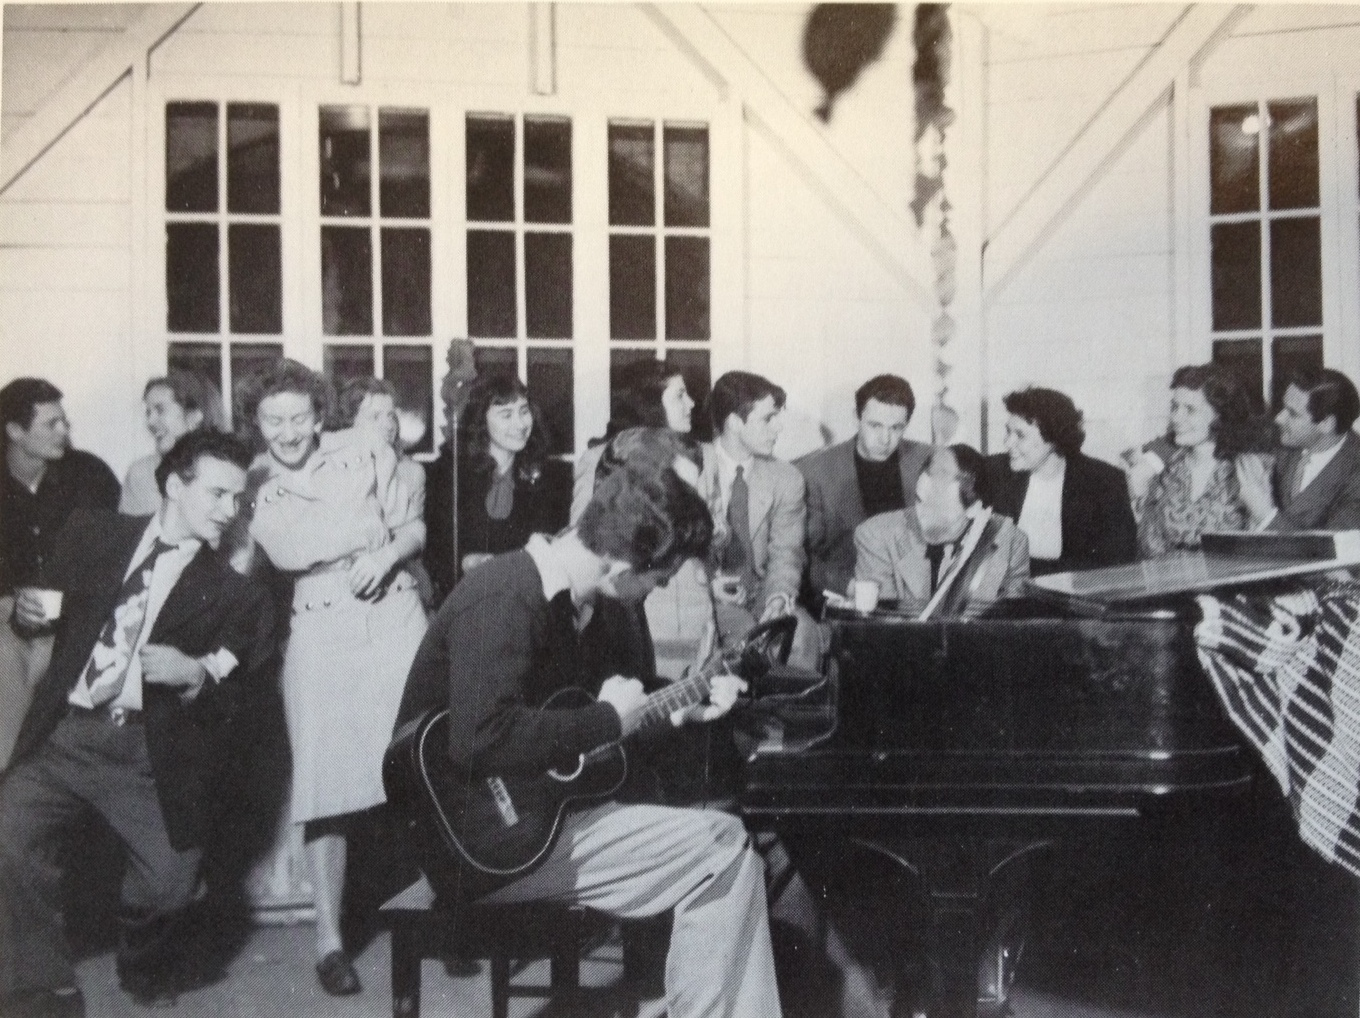 Student party at Black Mountain College. Photograph by Harry Noland